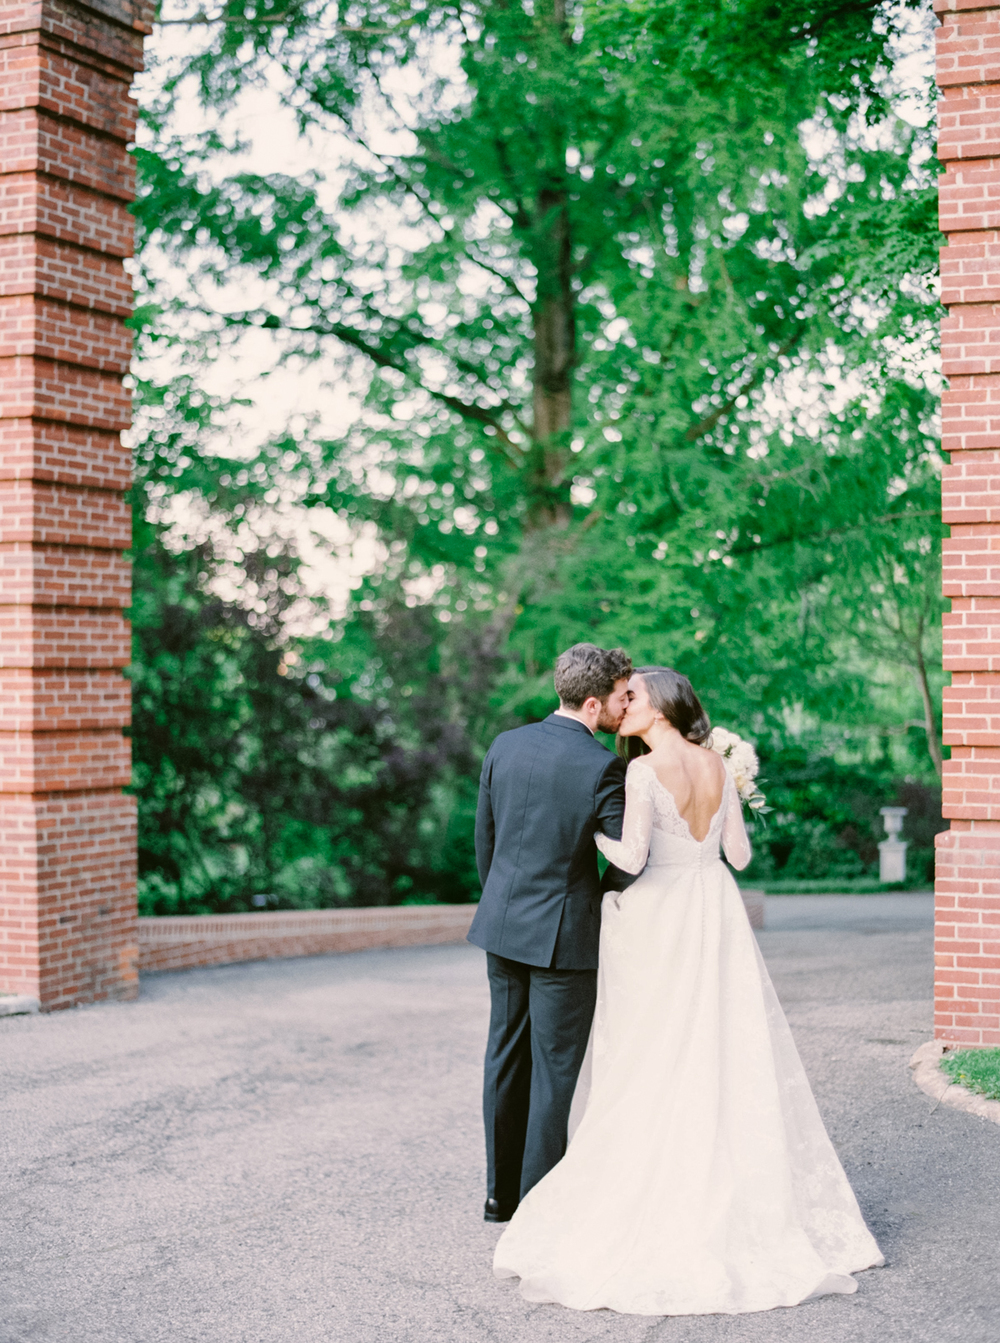 Beautiful Relationships Start as Buds and then Bloom: Madison and Michael's Elegant Estate Wedding as Featured in The Pioneer Issue